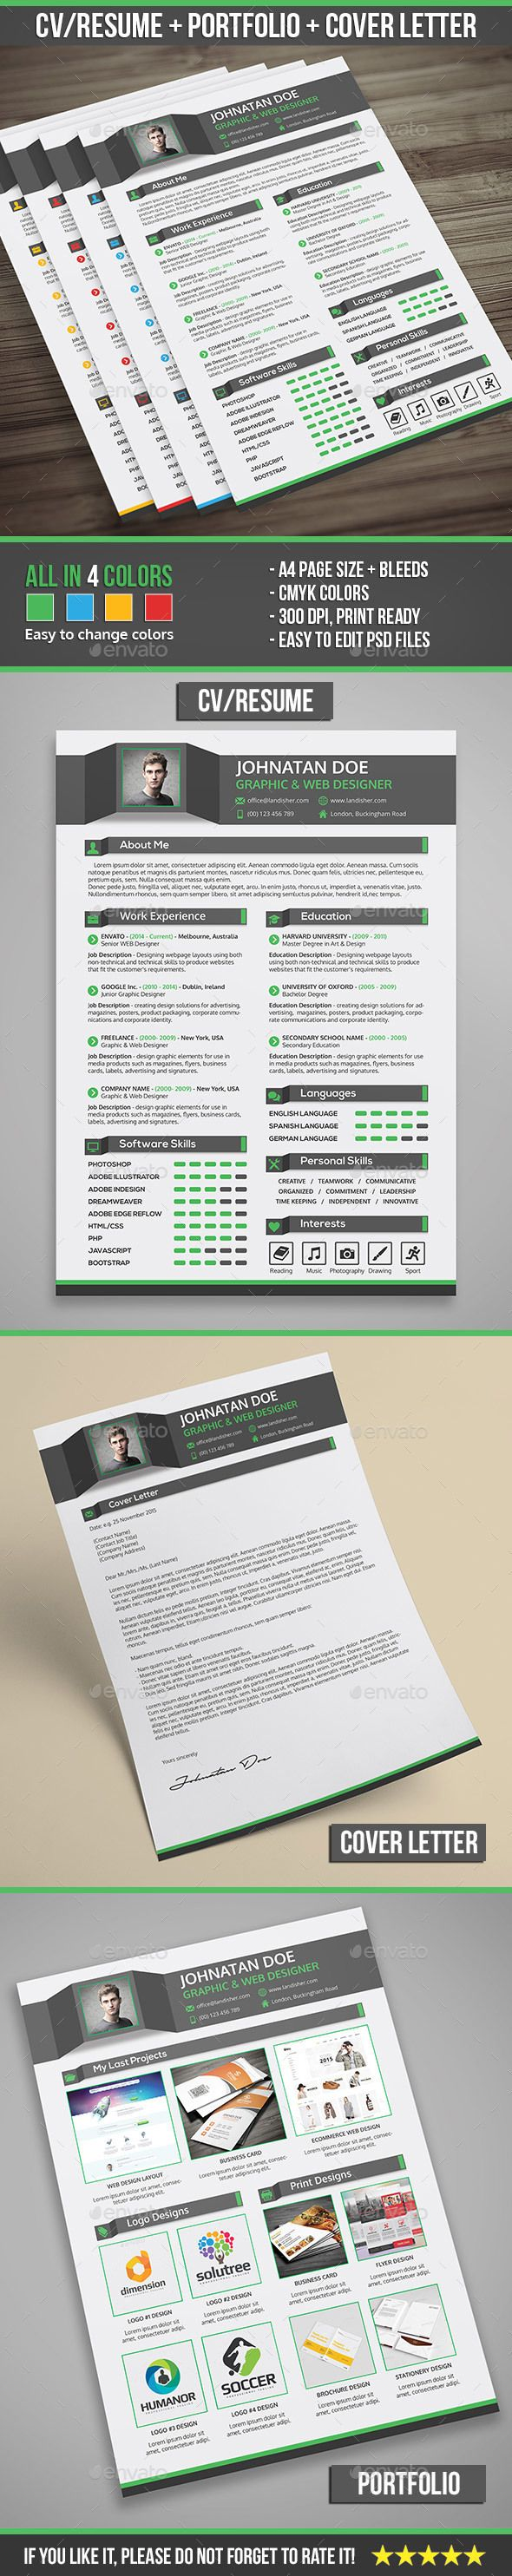 cover letter sample resume for a highschool student with no     Offer cover letter sample template